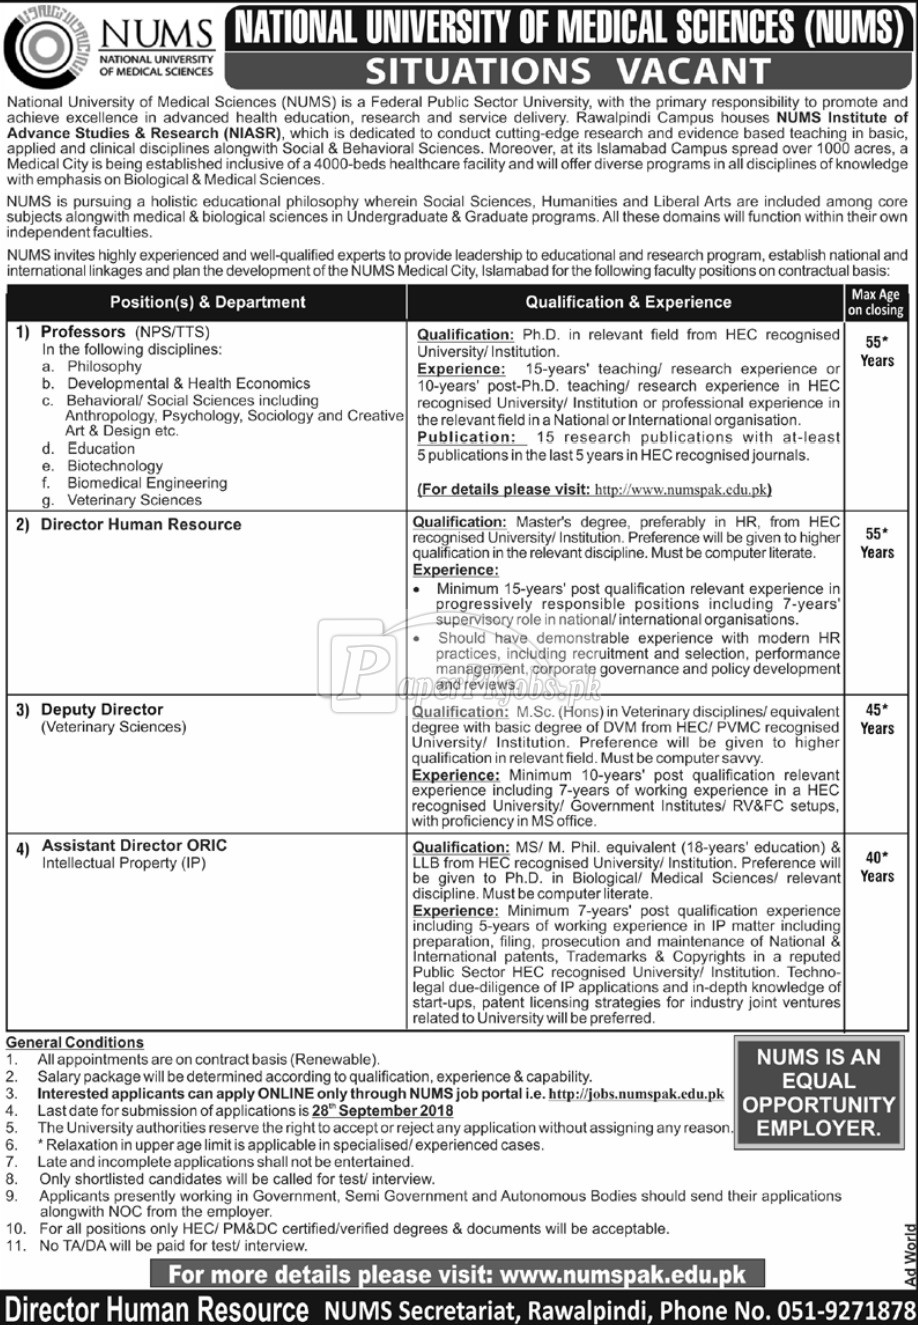 National University of Medical Sciences Jobs 2018